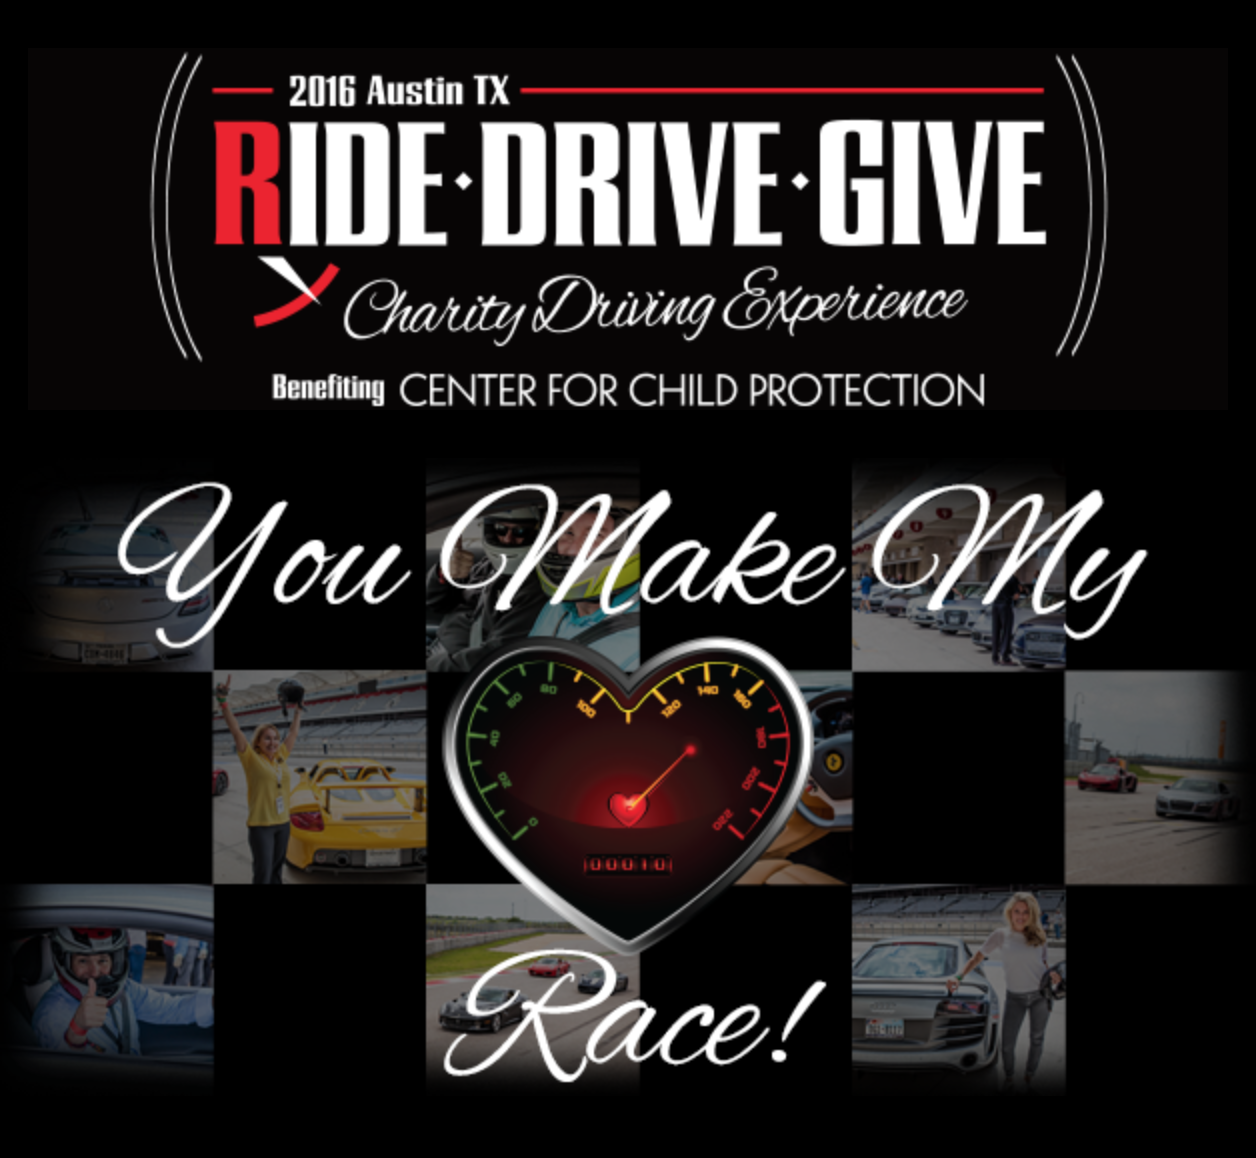 Ride.Drive.Give